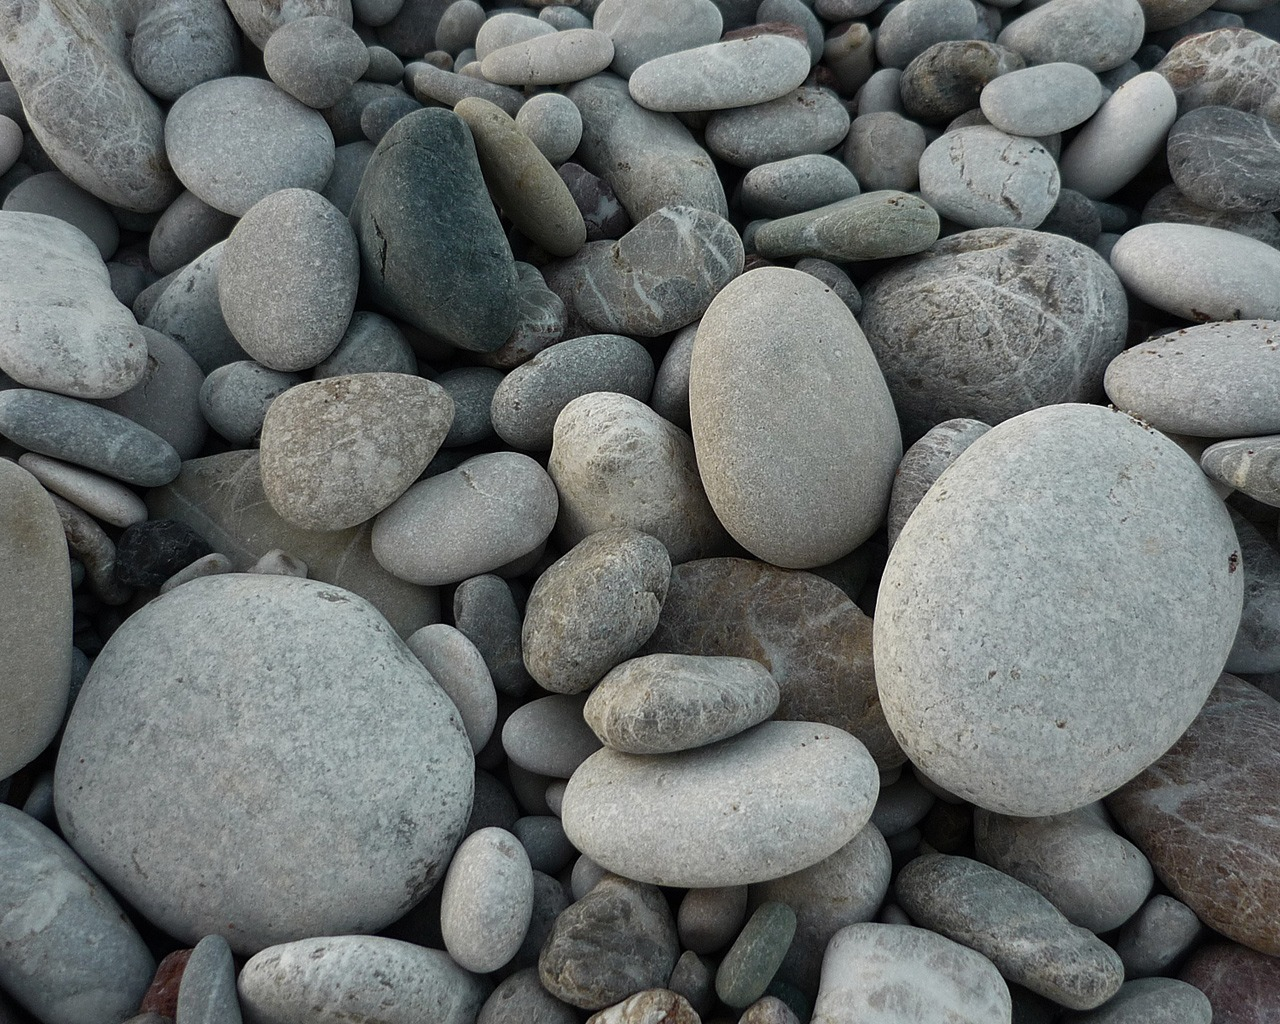 Stones Wallpaper Other Nature 1280x1024